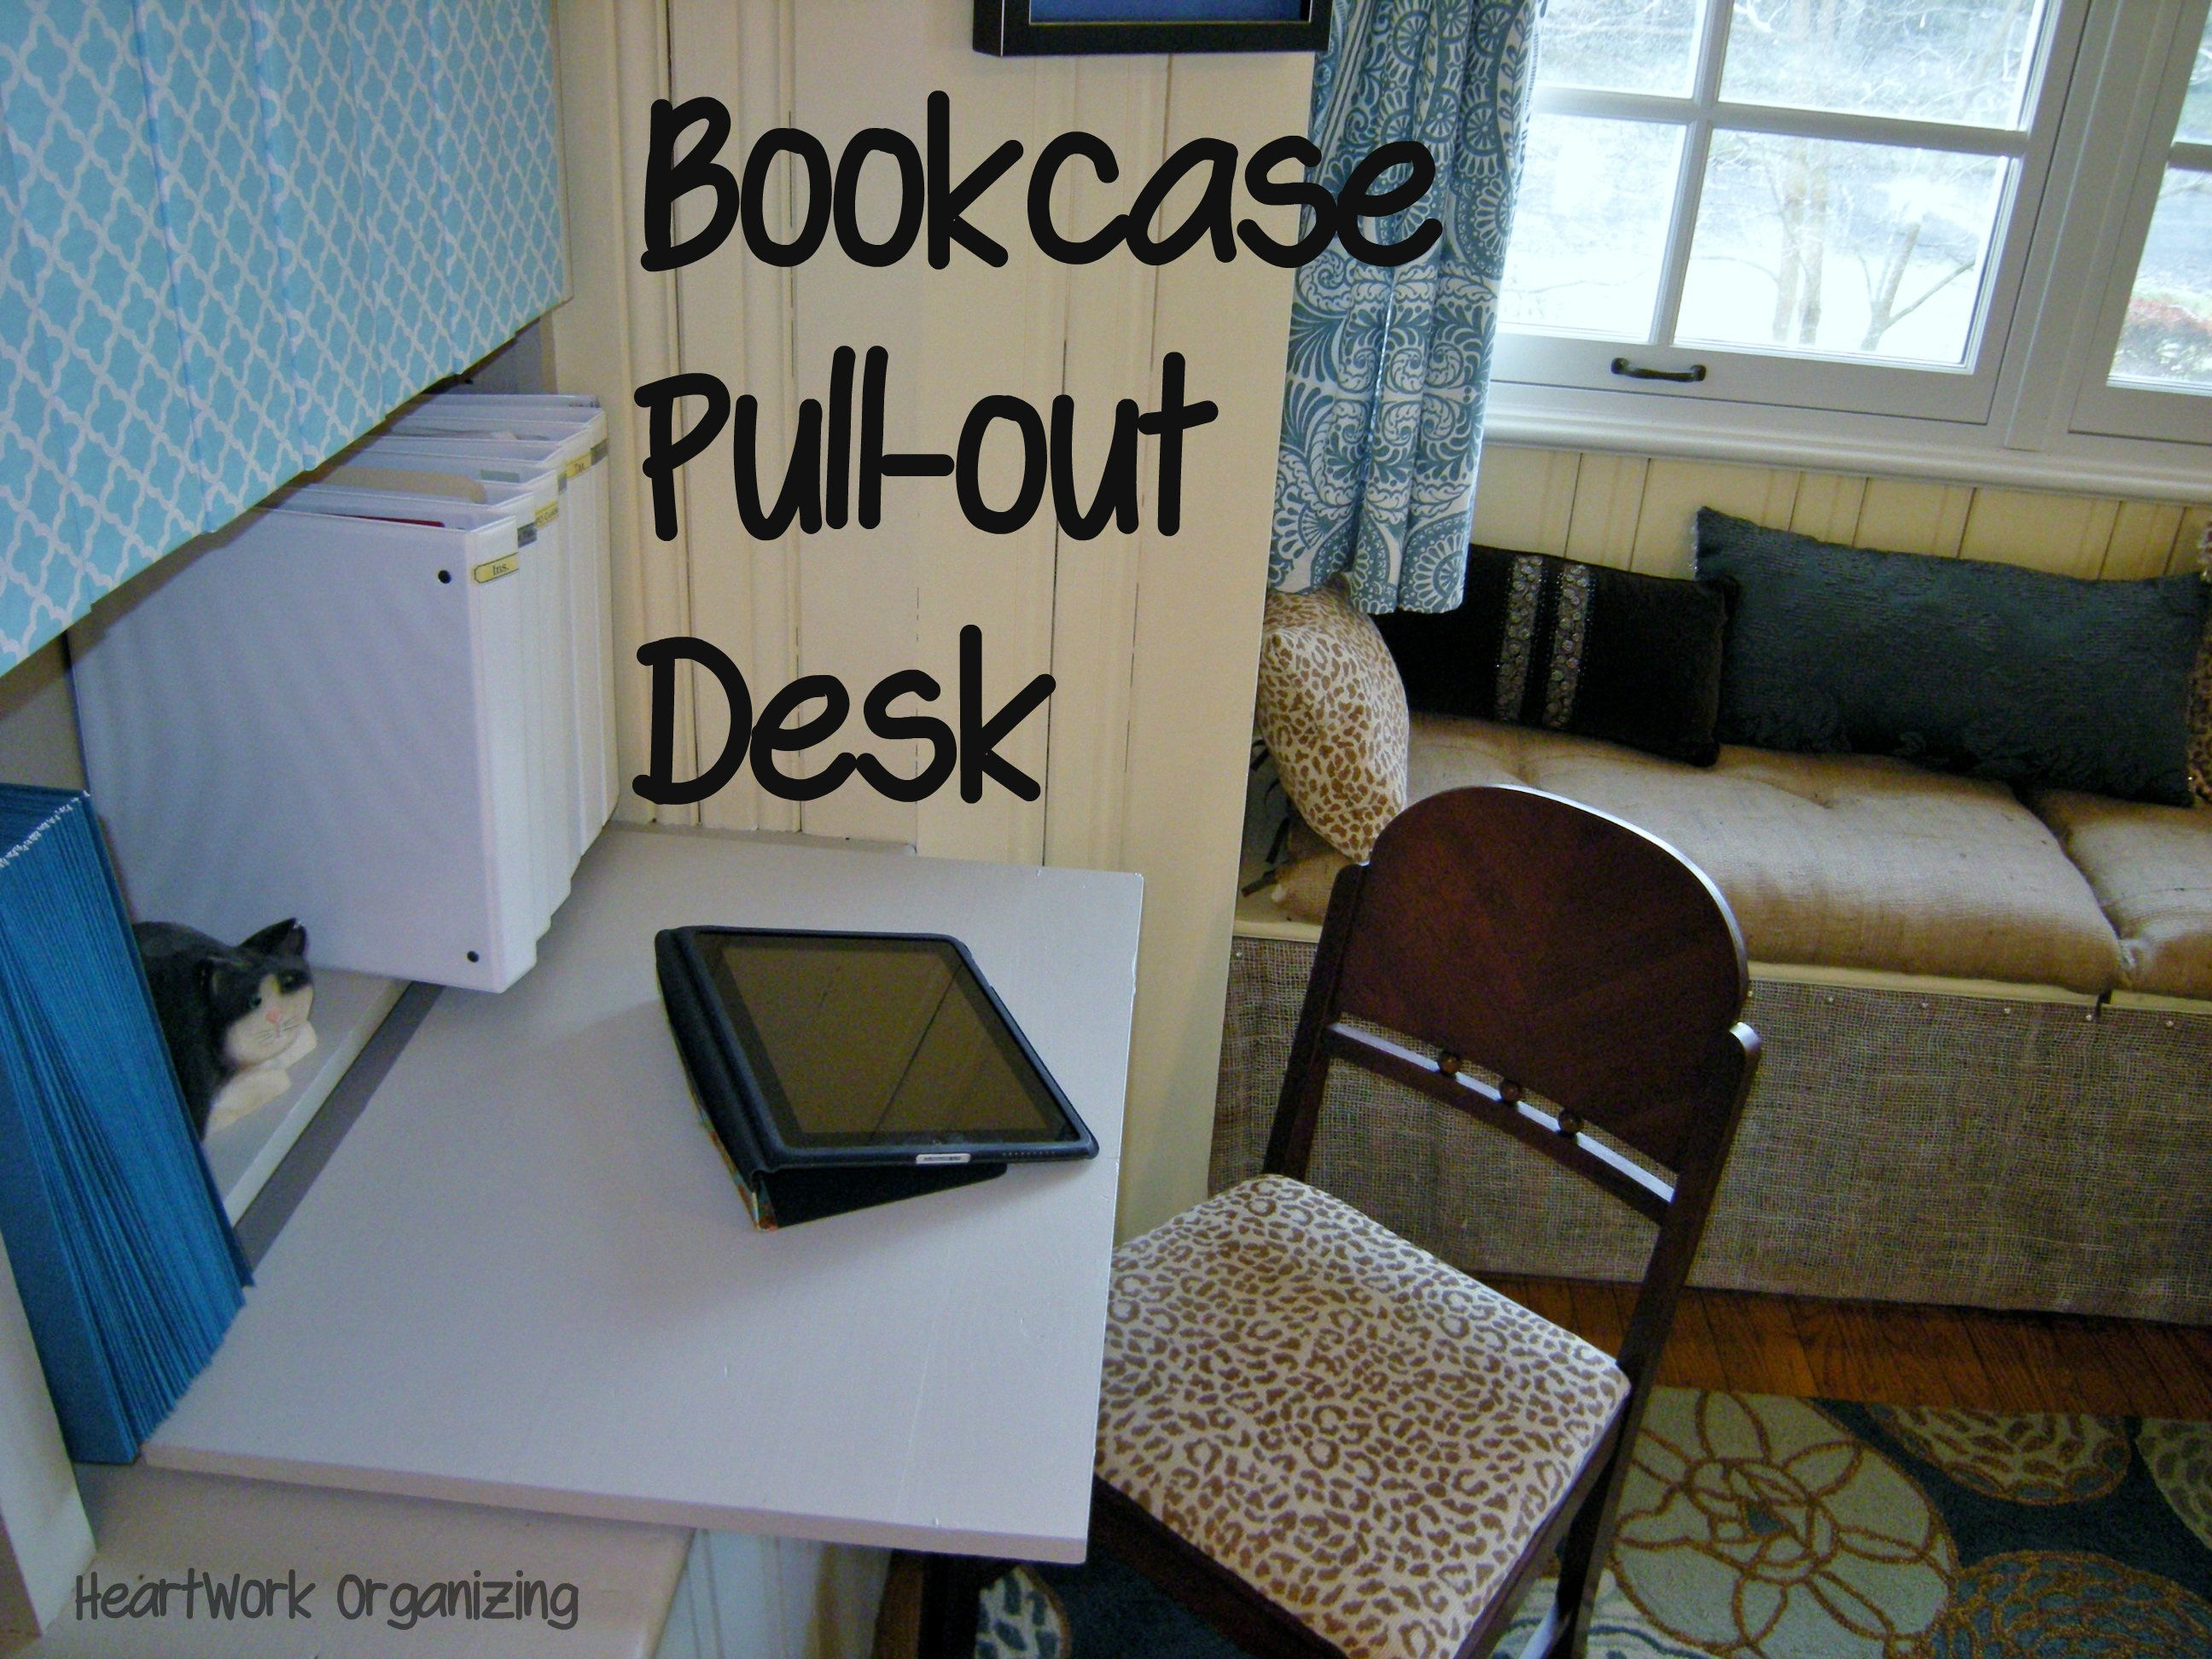 Bookcase Pull Out Desk